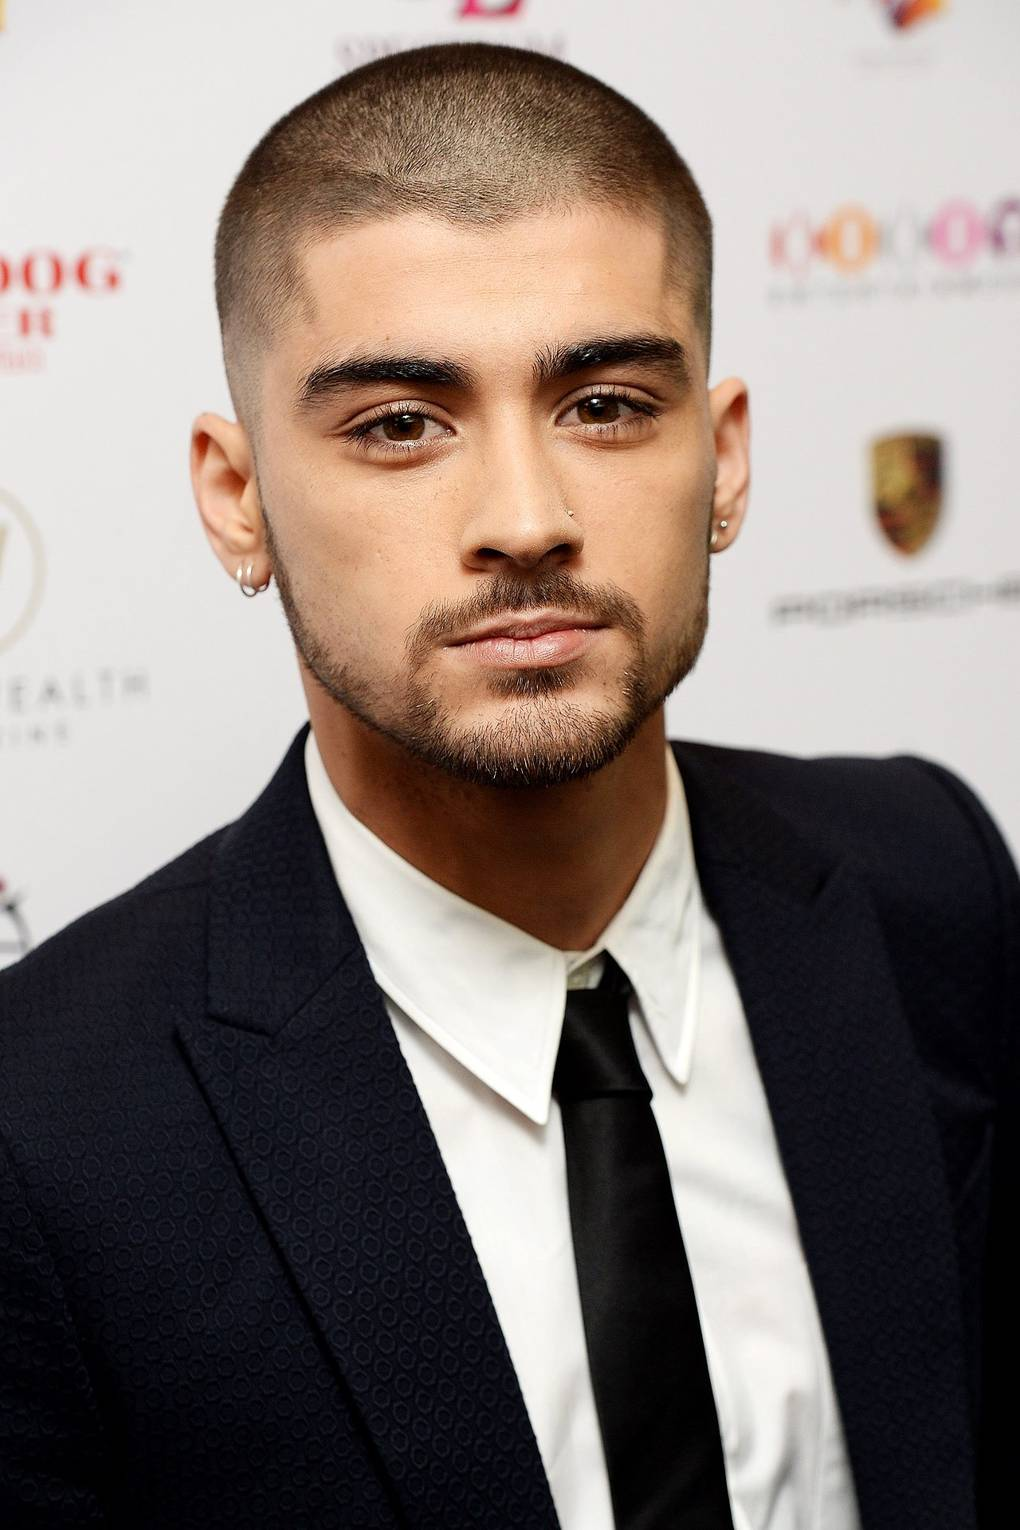 zayn malik hair & hairstyles: blonde, floppy, shaved & pink | glamour uk